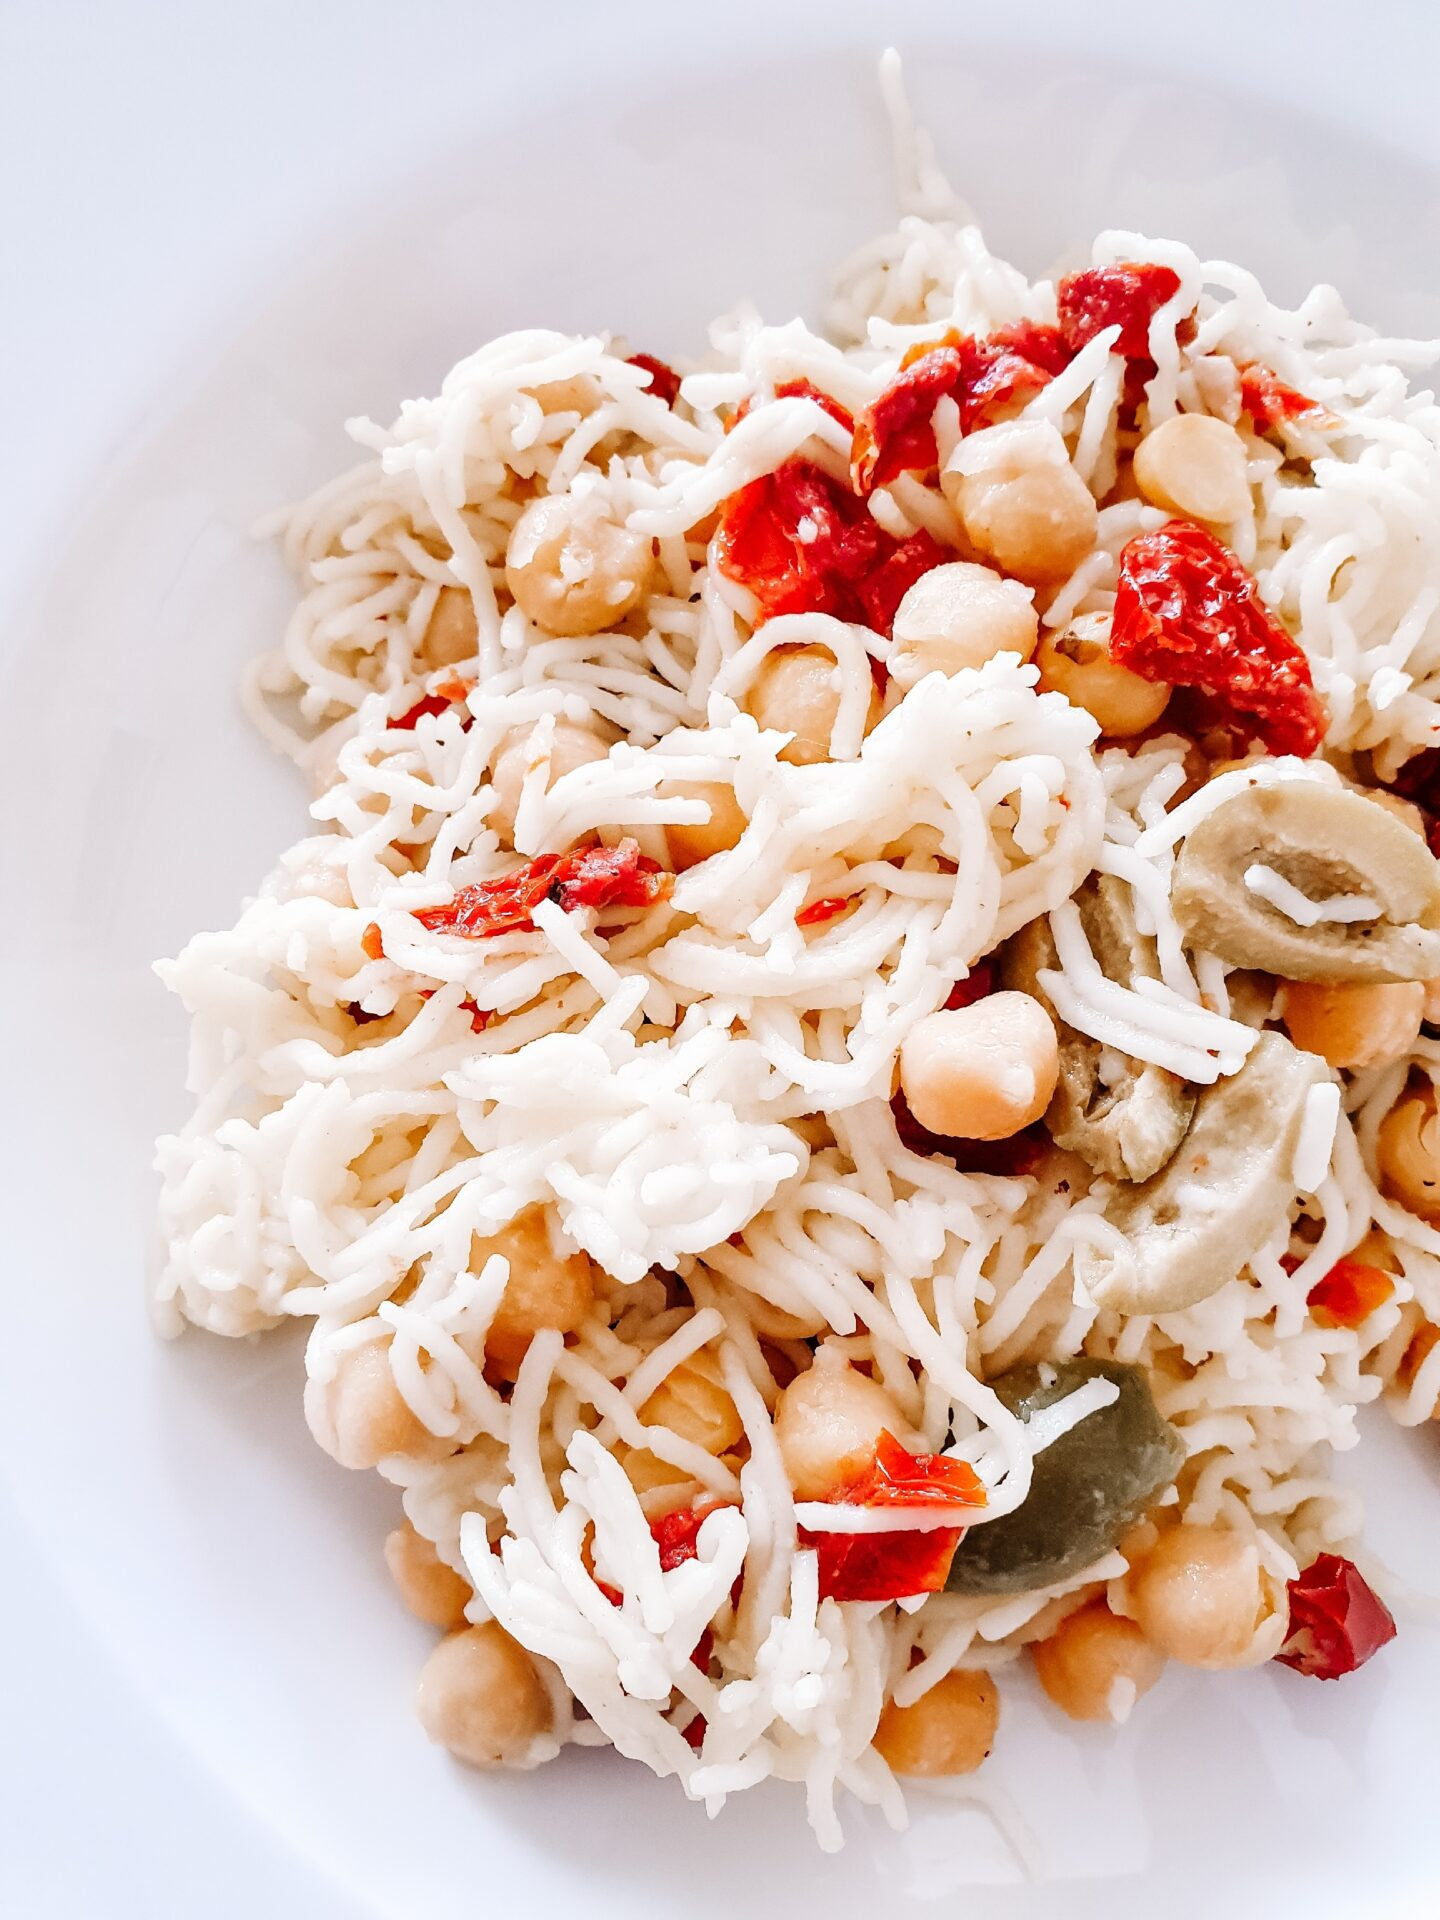 photo of a noodle salad in a bowl with chickpeas and sundried tomatoes.